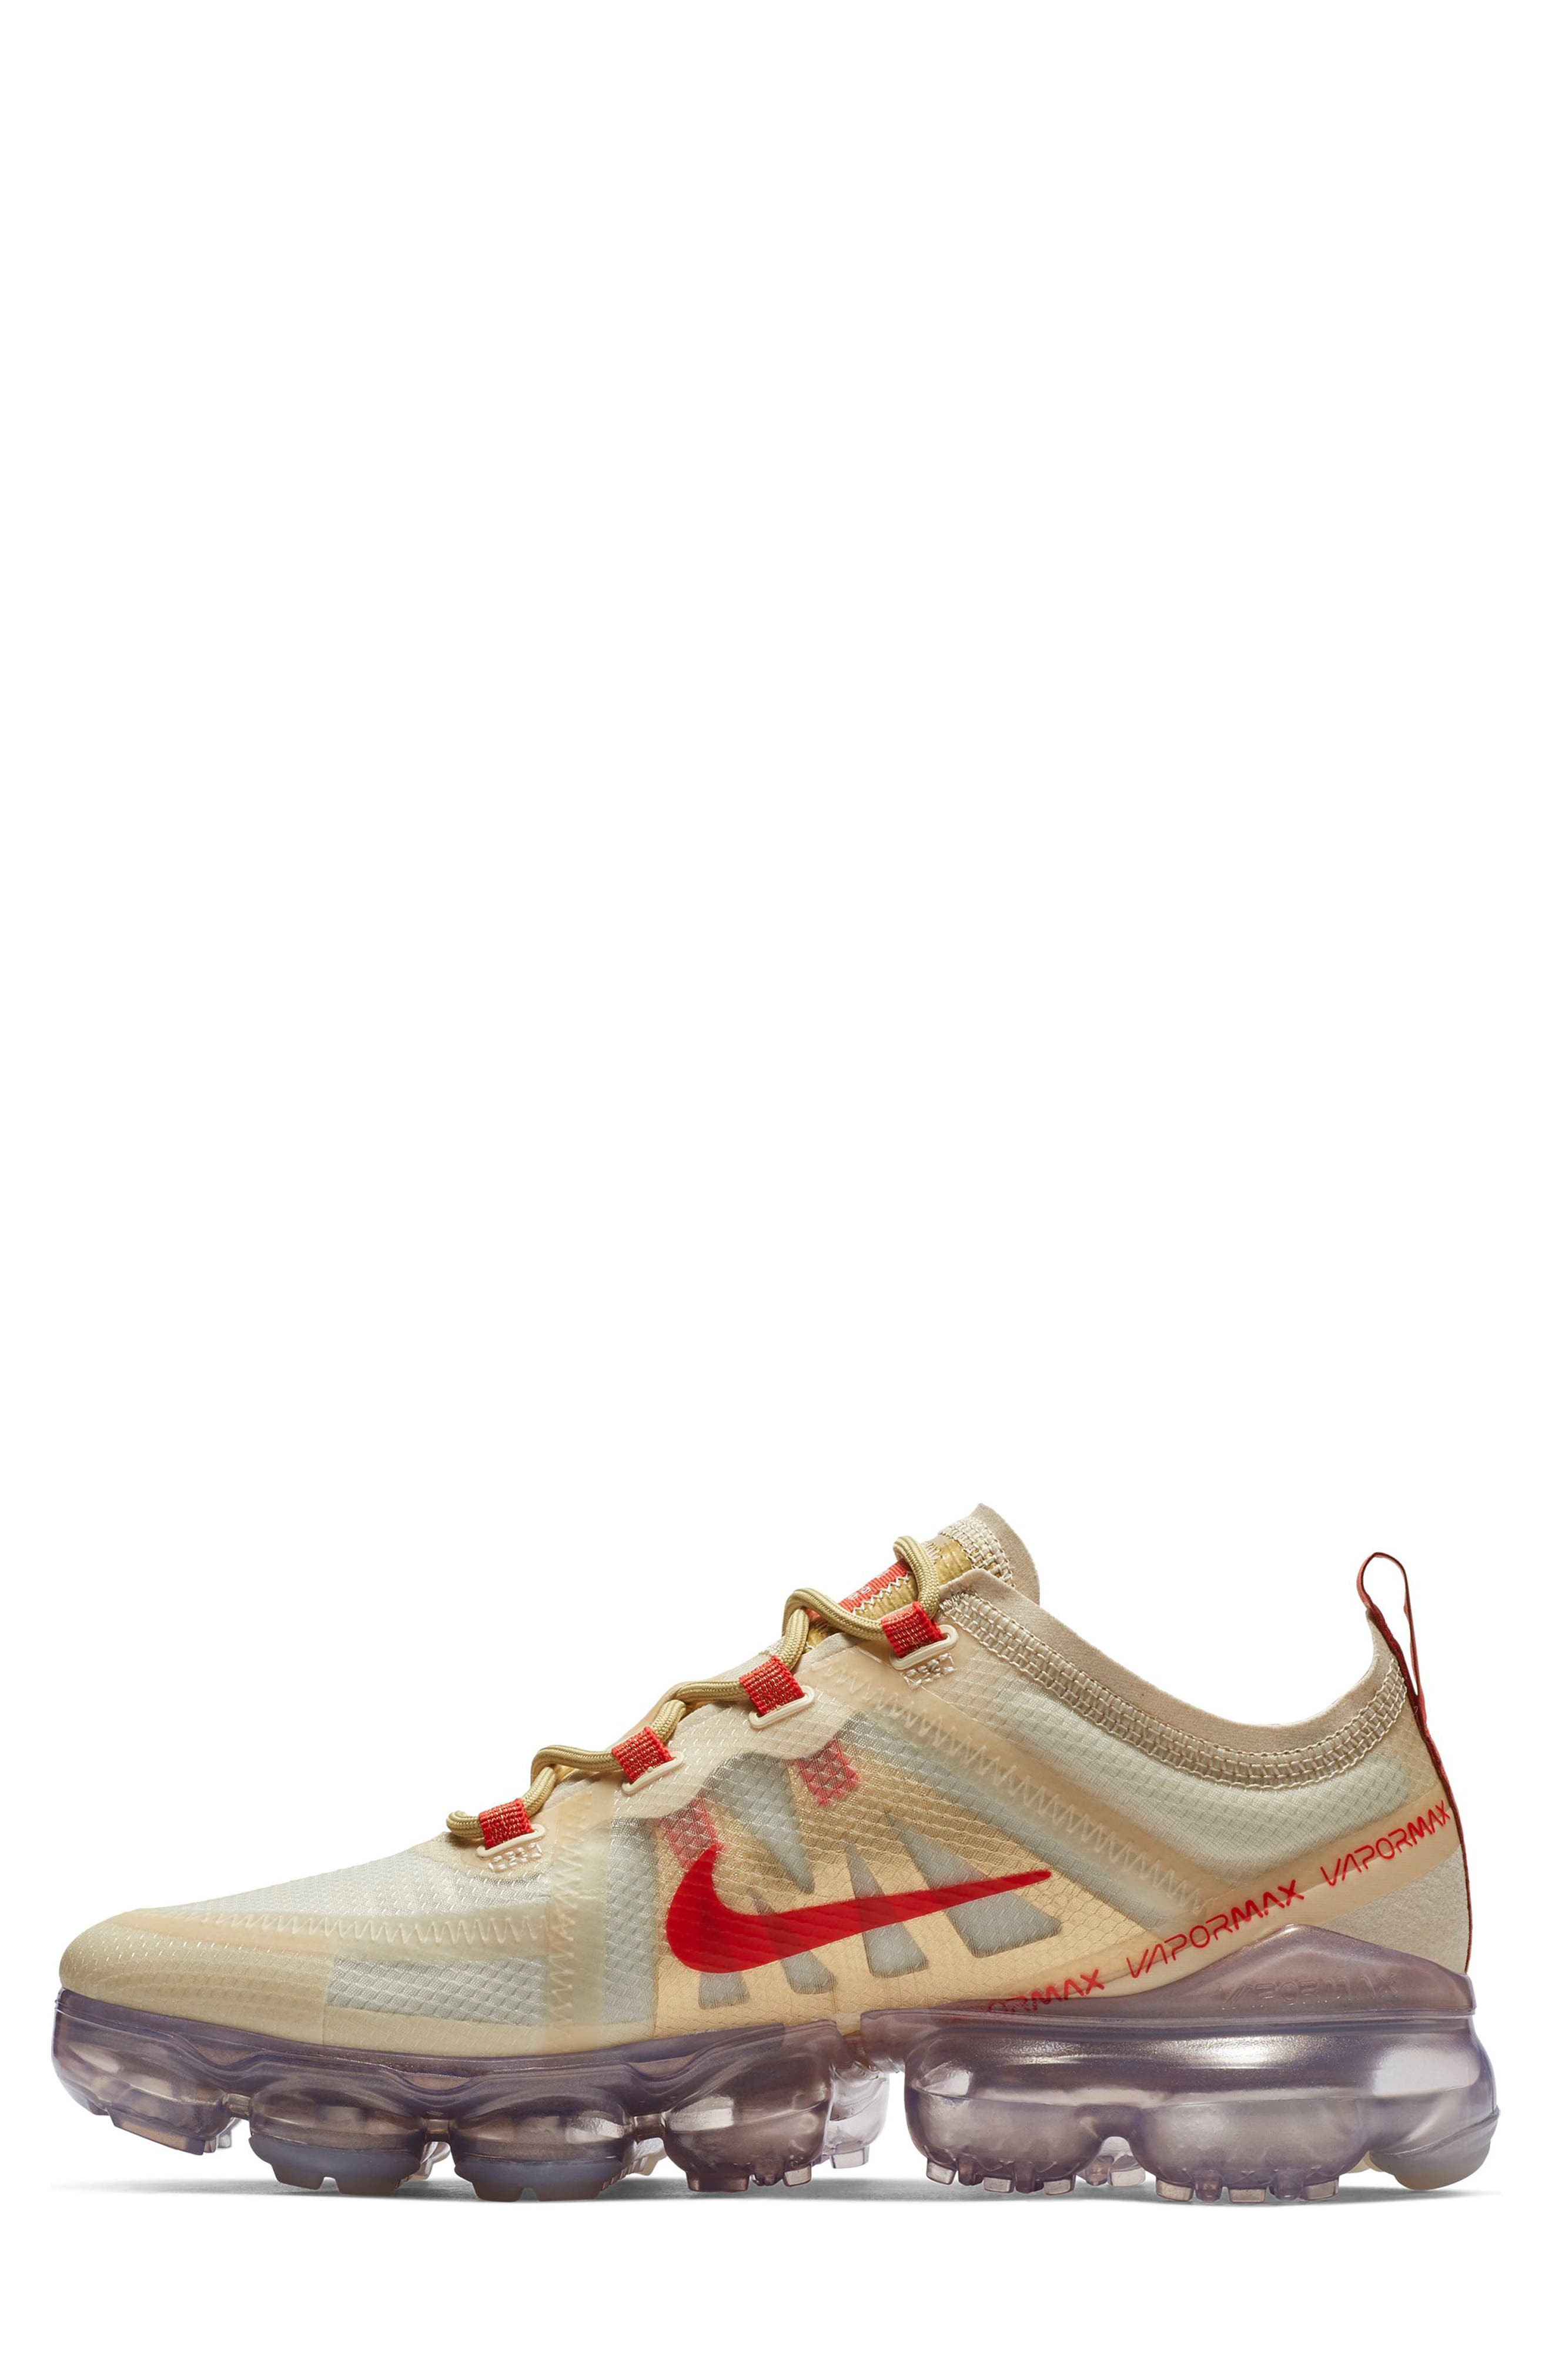 Air VaporMax 2019 Chinese New Year Running Shoe,                             Alternate thumbnail 3, color,                             CREAM/ HABANERO RED/ CLUB GOLD